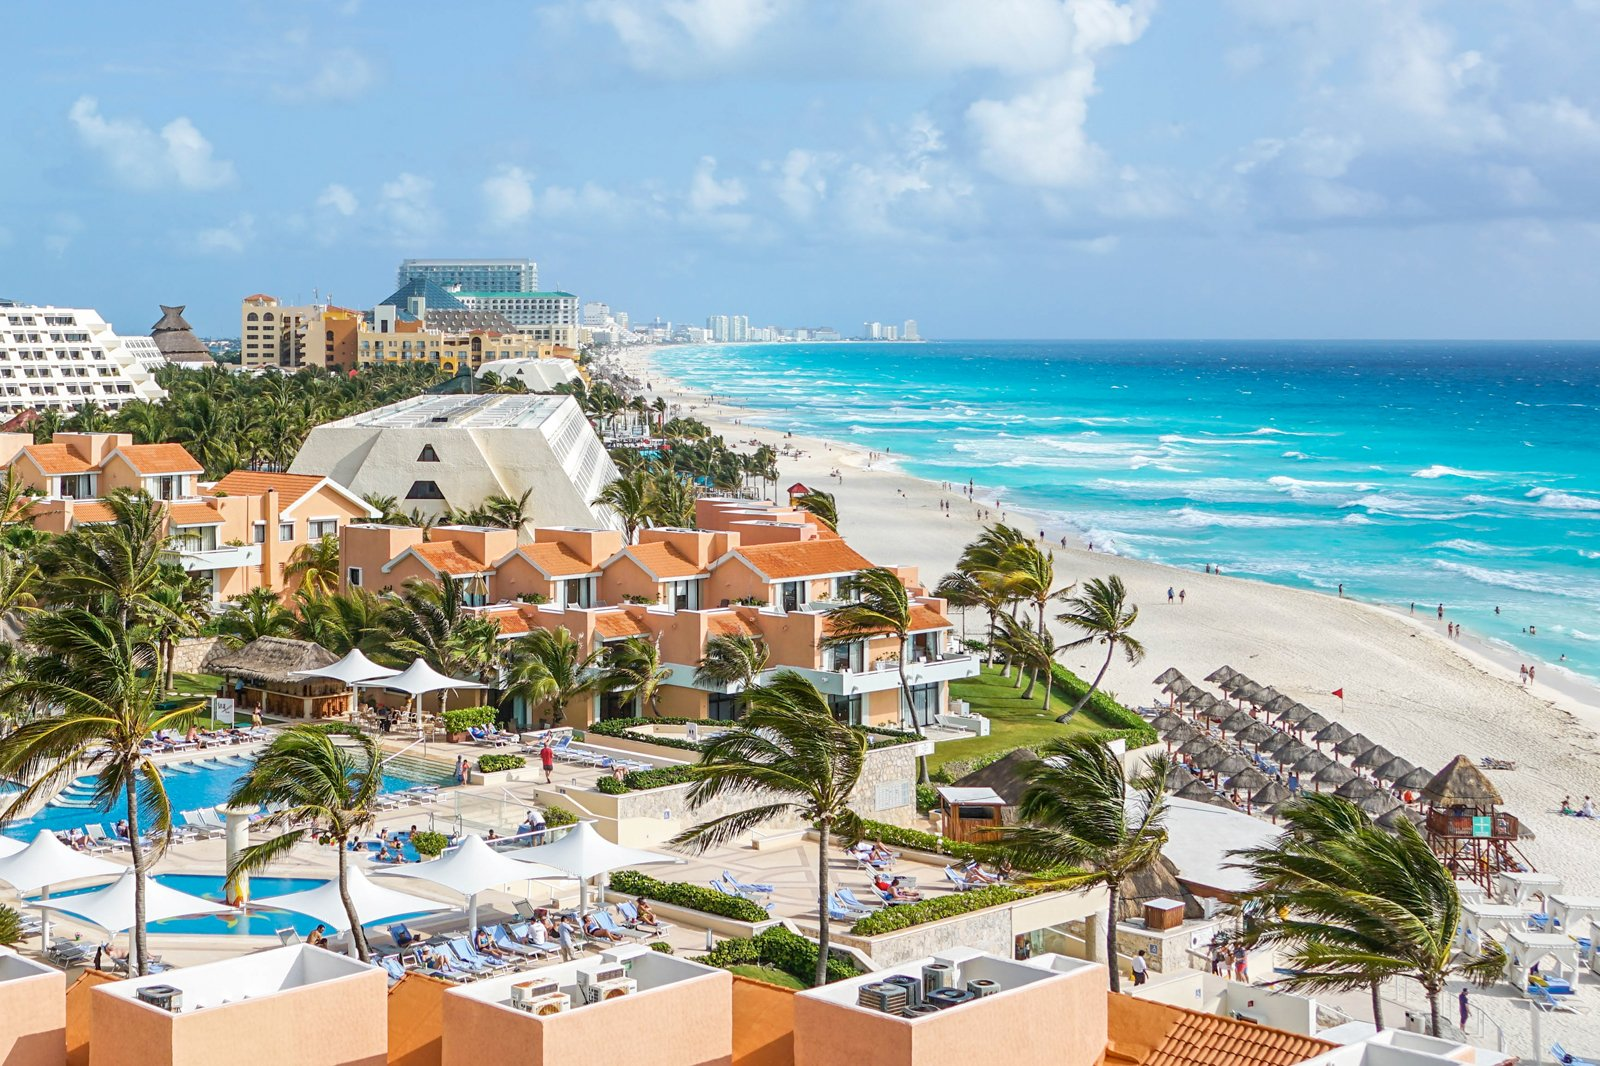 Hotels cancun party spring break Best Party